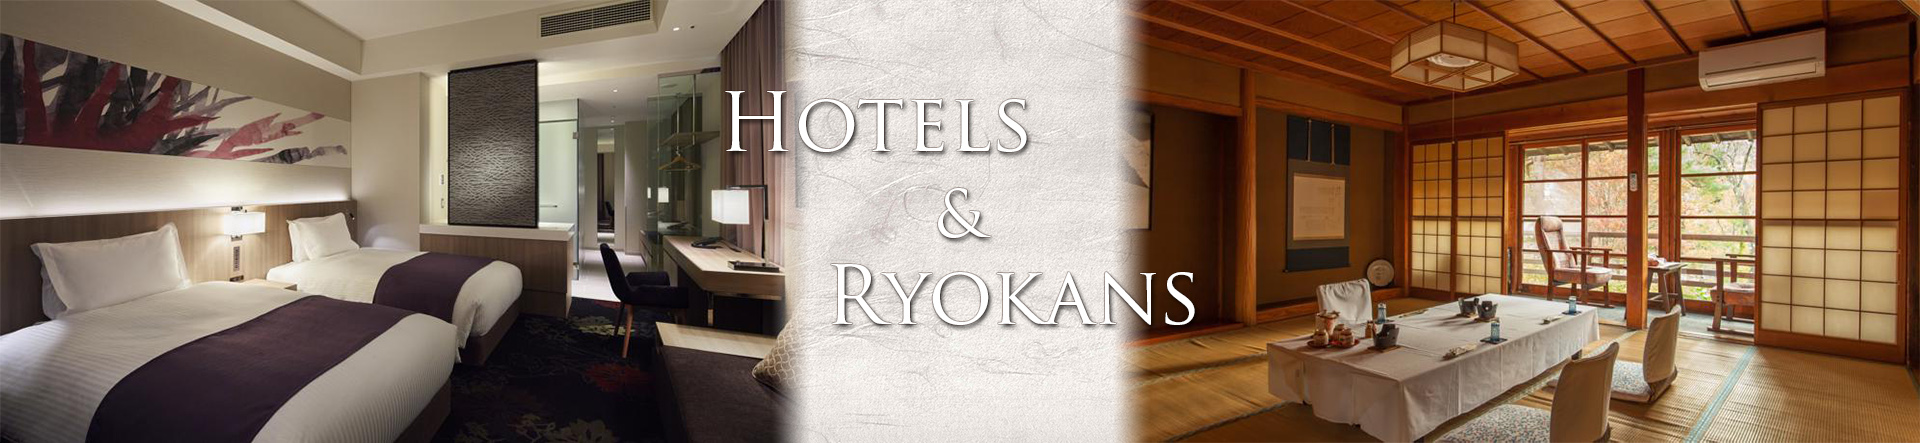 hotels and ryokans